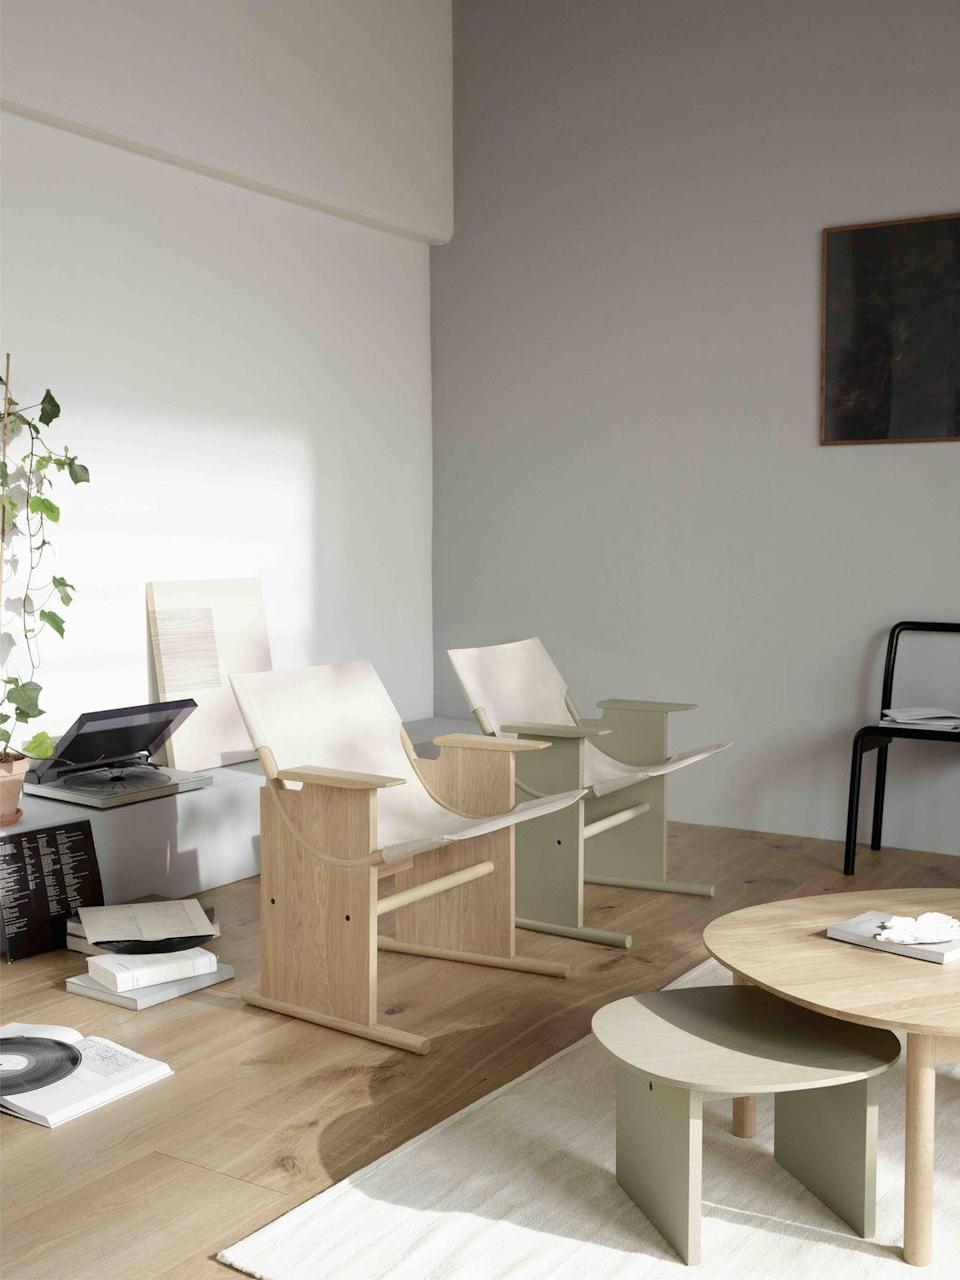 """<p>For Denmark-based Takt, a transparent, responsible approach to design is as important as how products look and function. Happily, its 'Sling' chair ticks all the boxes. Designed by Sam Hecht and Kim Colin of British firm Industrial Facility, it comprises a linen 'hammock' that slides over an oak frame, so it's light to ship, easy to assemble and comfortable. From £416, <a href=""""https://taktcph.com/"""" rel=""""nofollow noopener"""" target=""""_blank"""" data-ylk=""""slk:taktcph.com"""" class=""""link rapid-noclick-resp"""">taktcph.com</a></p>"""